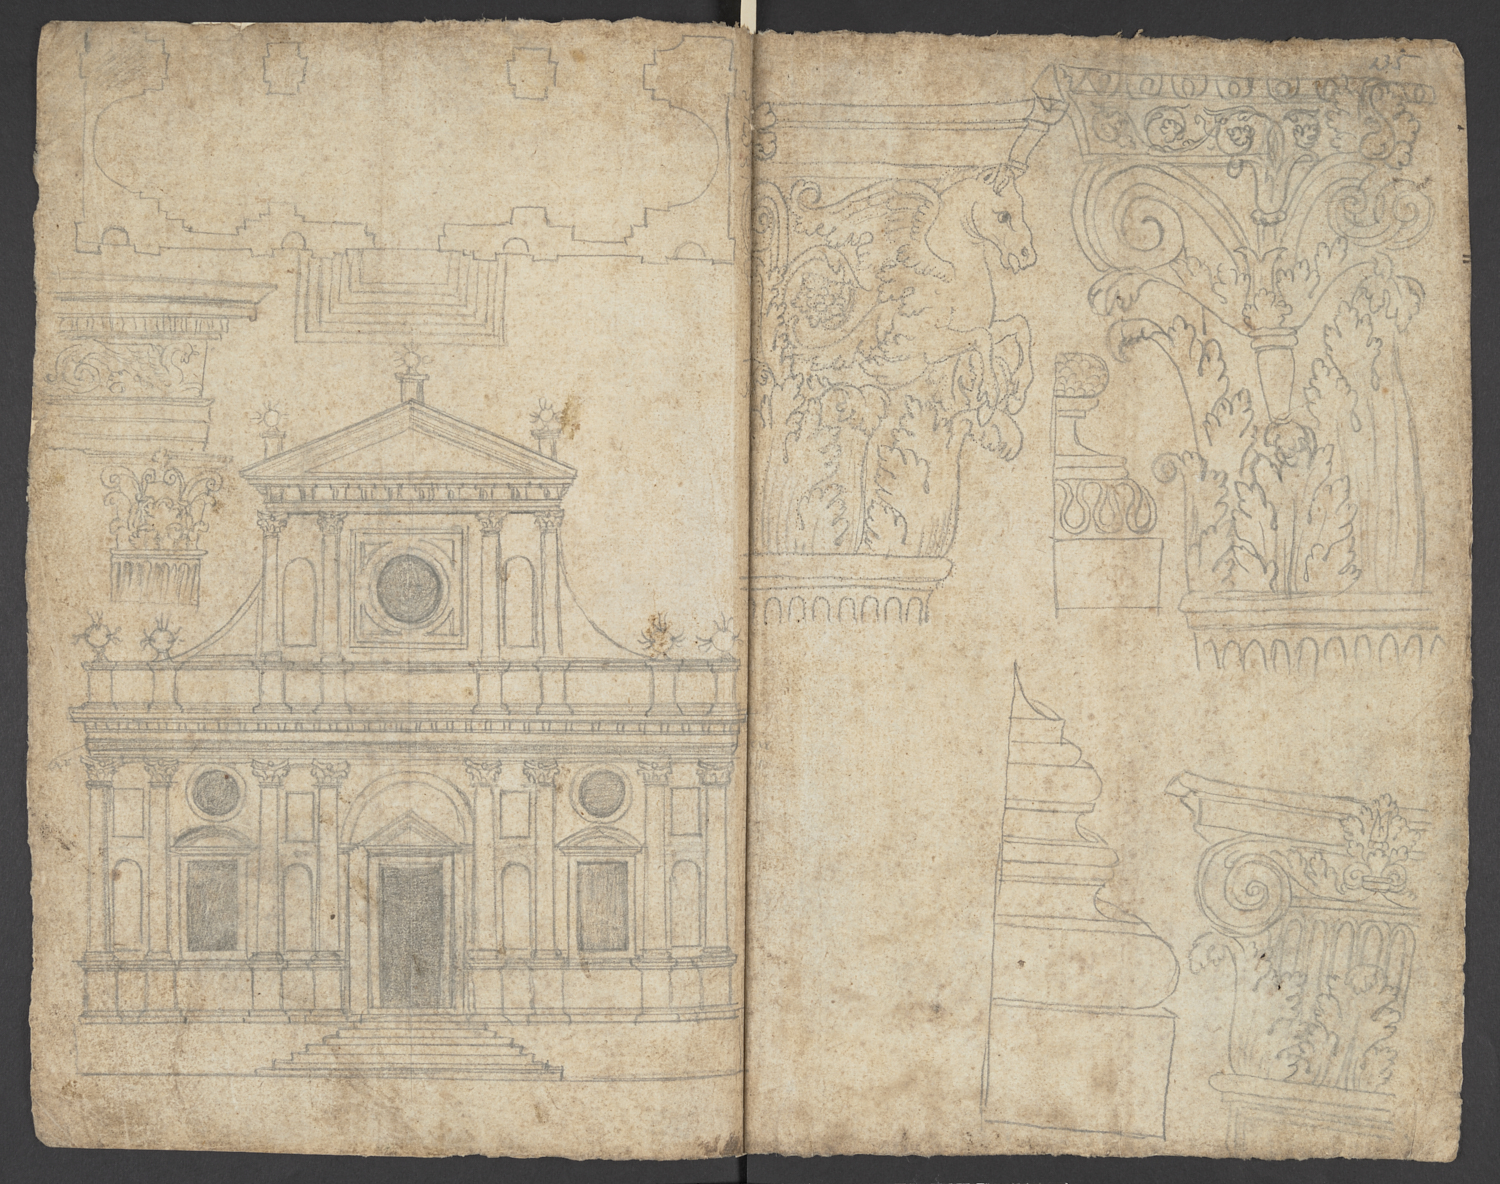 Anonymous, after Sebastiano Serlio (1475-1554), The Corinthian Order, 17th century, pen and ink over graphite, (British Library, Harl 2073, ff. 134v and 135r).